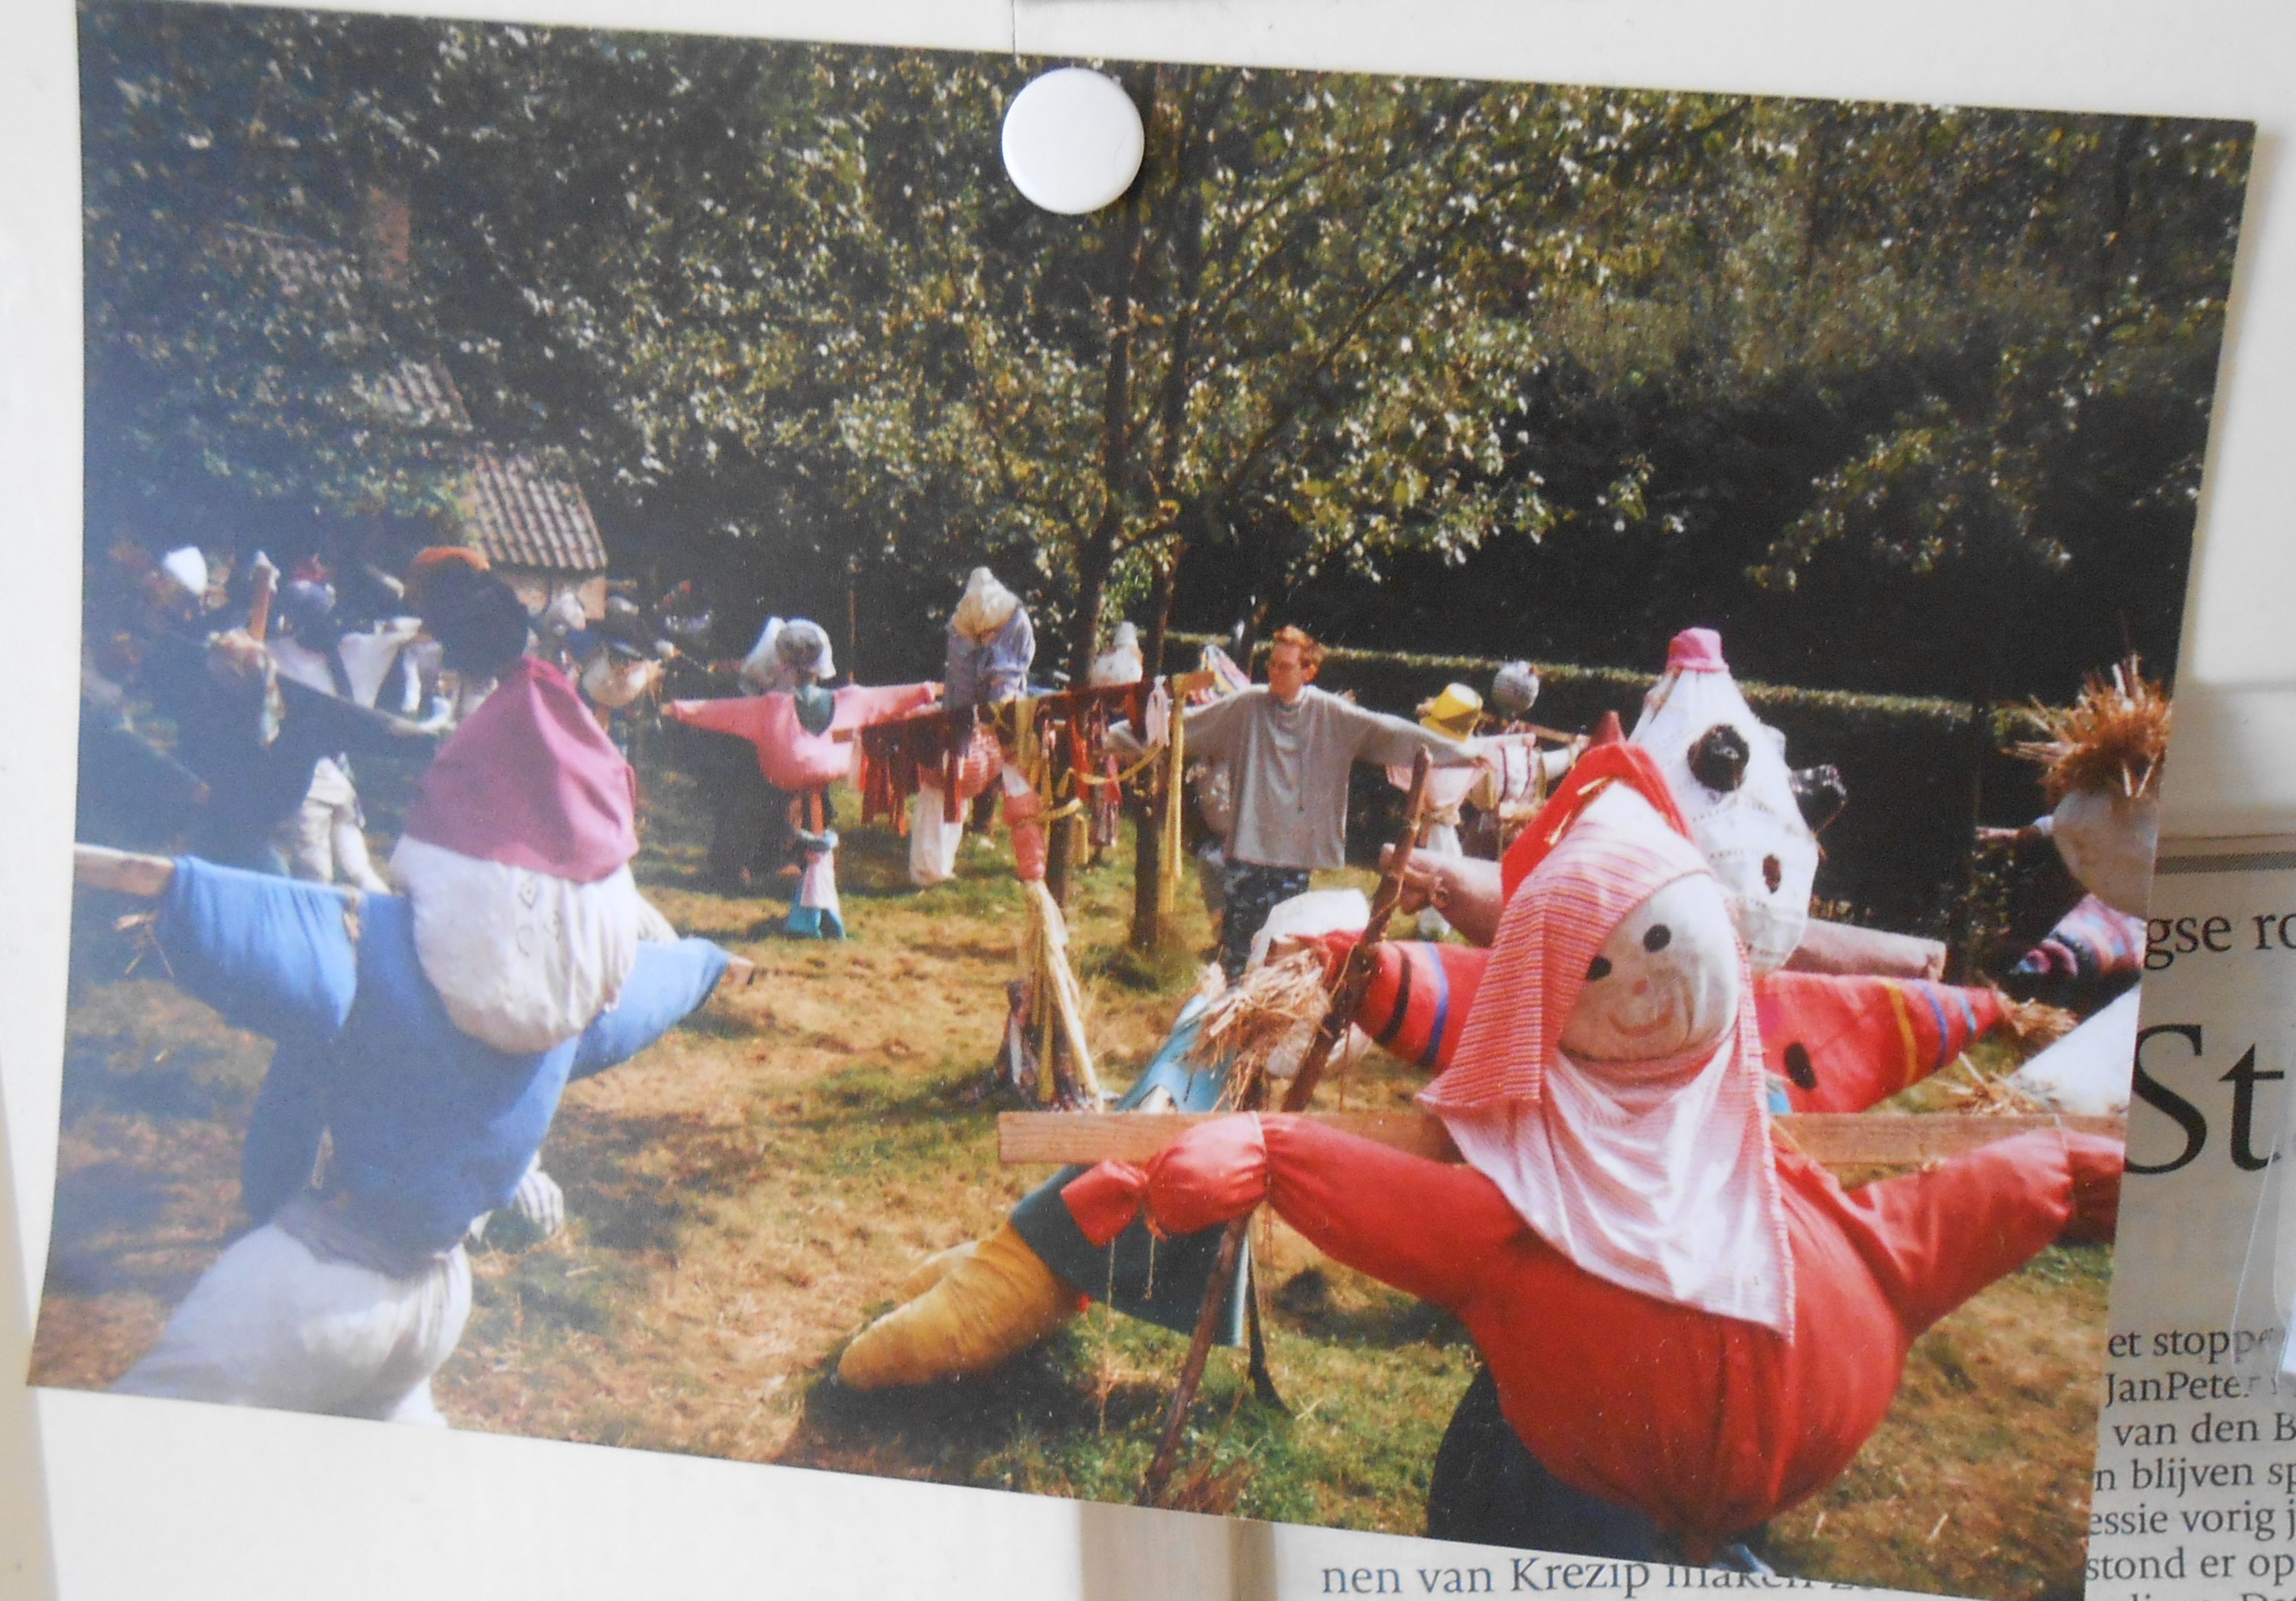 My lovely brother Pieter has got a great sense of humor, lost in a sea of scarecrows.